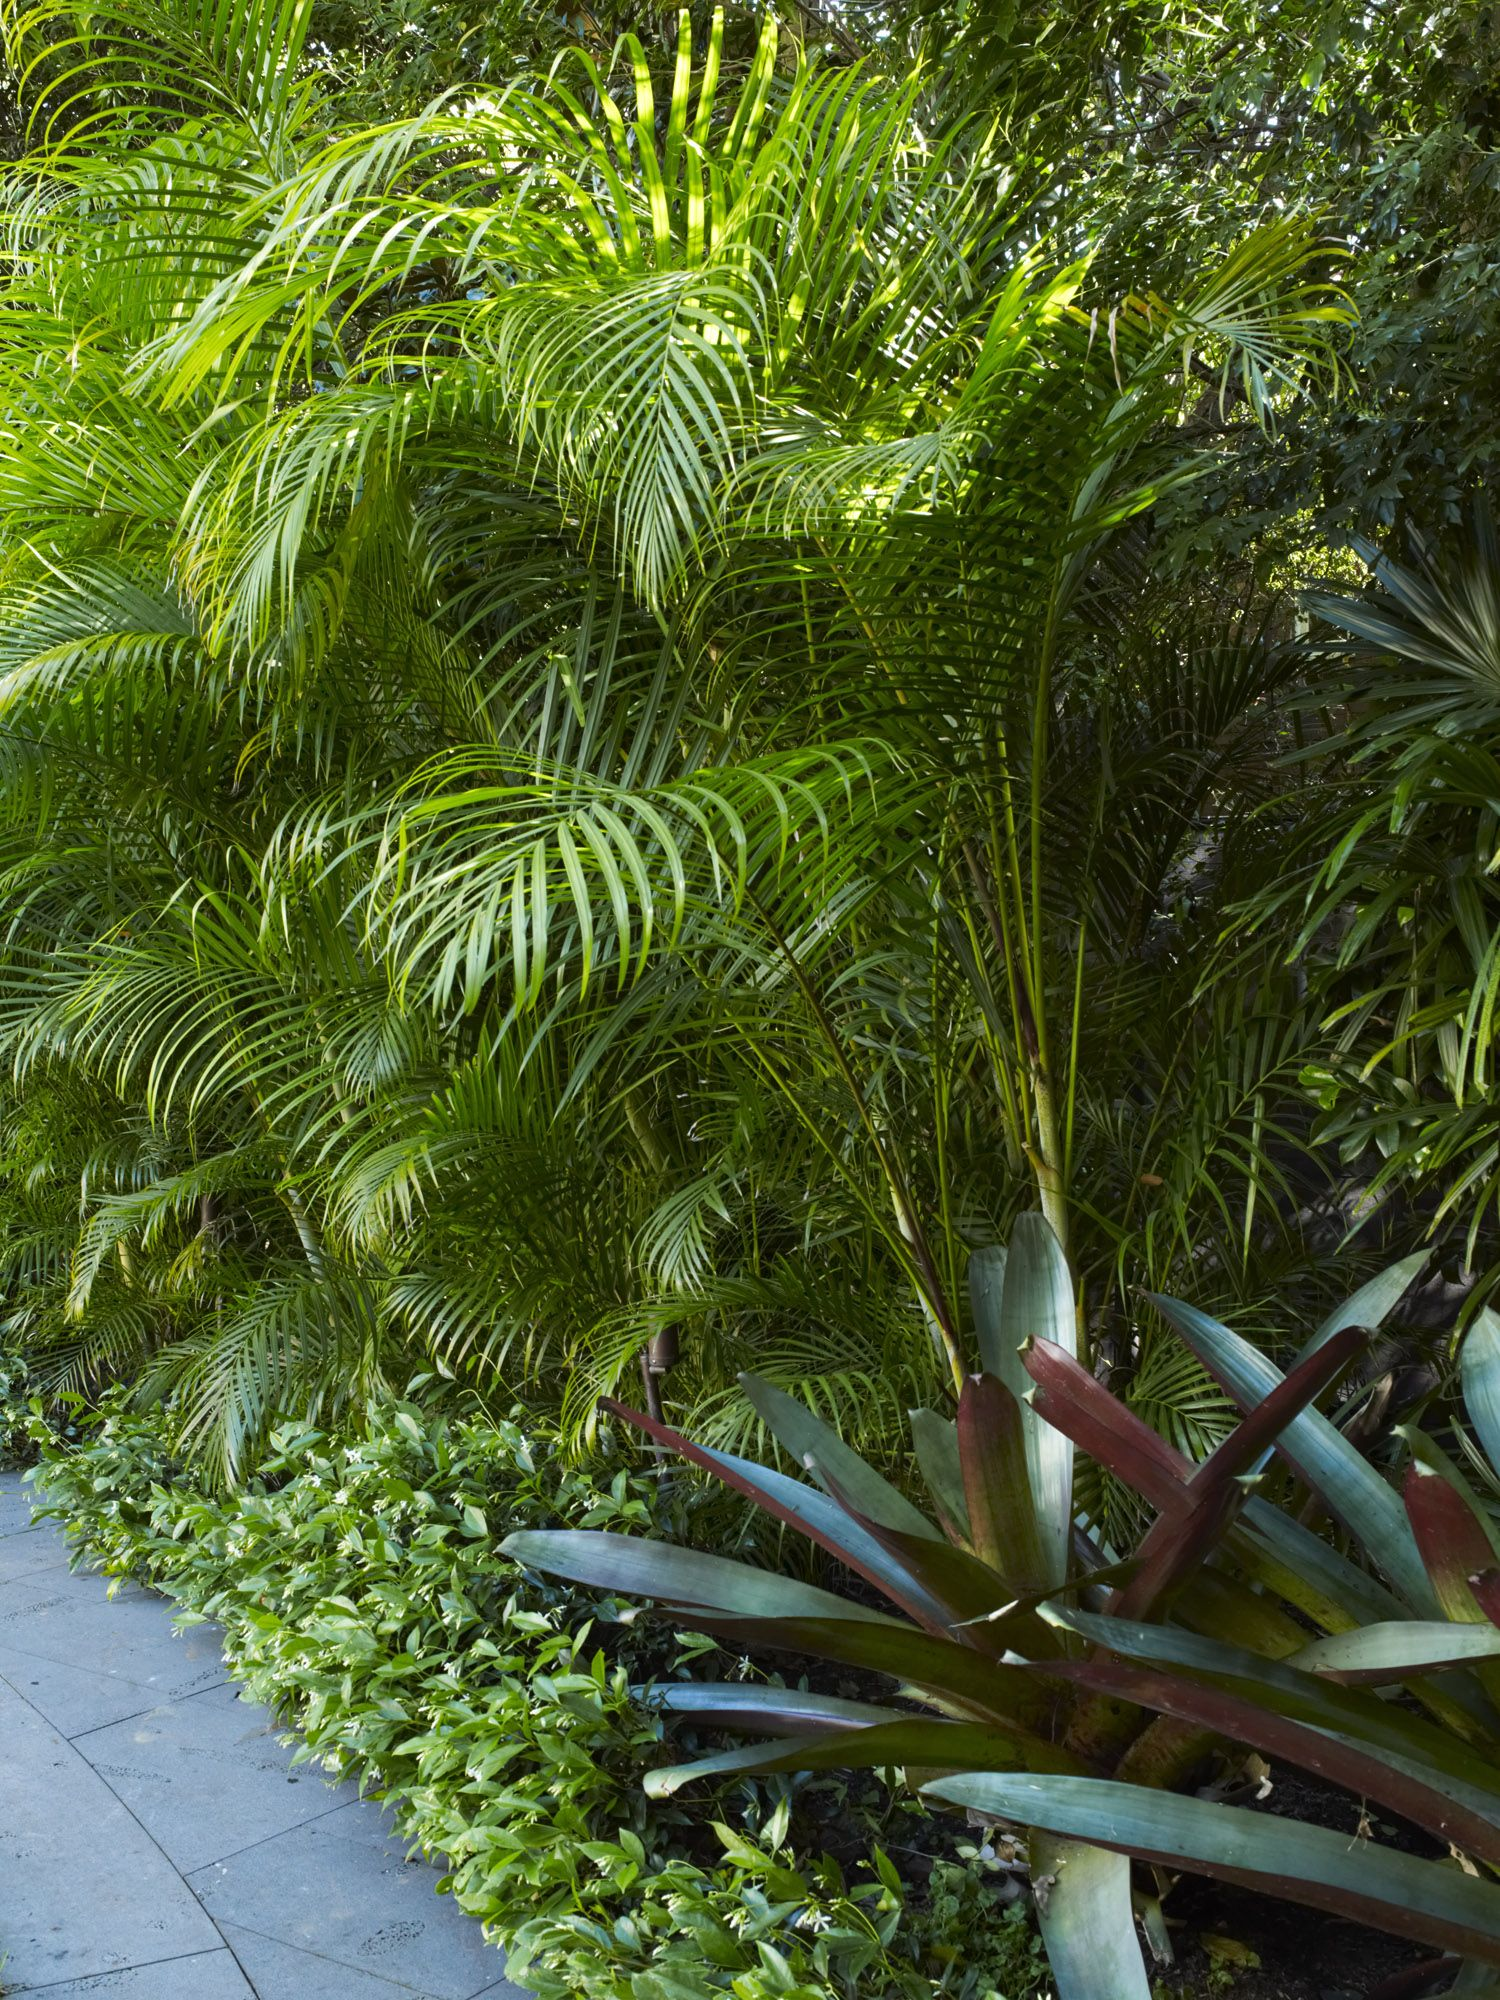 Dypsis Lutescens Useful Tropical Plants Dypsis Lutescens With King Bromeliads Rose Bay 1